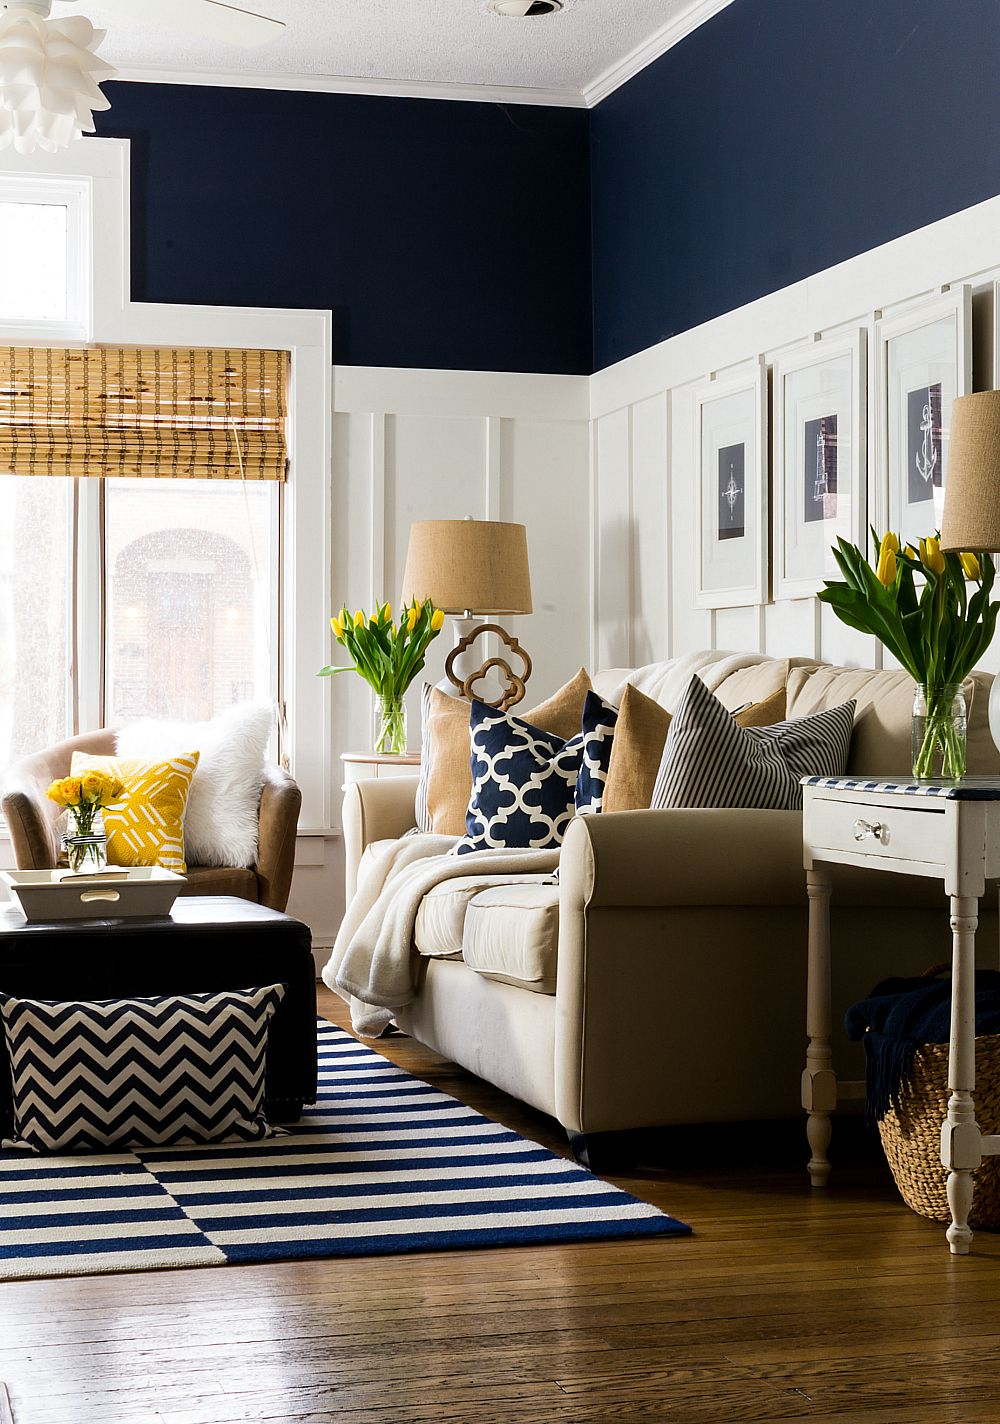 Spring Decor Ideas In Navy And Yellow